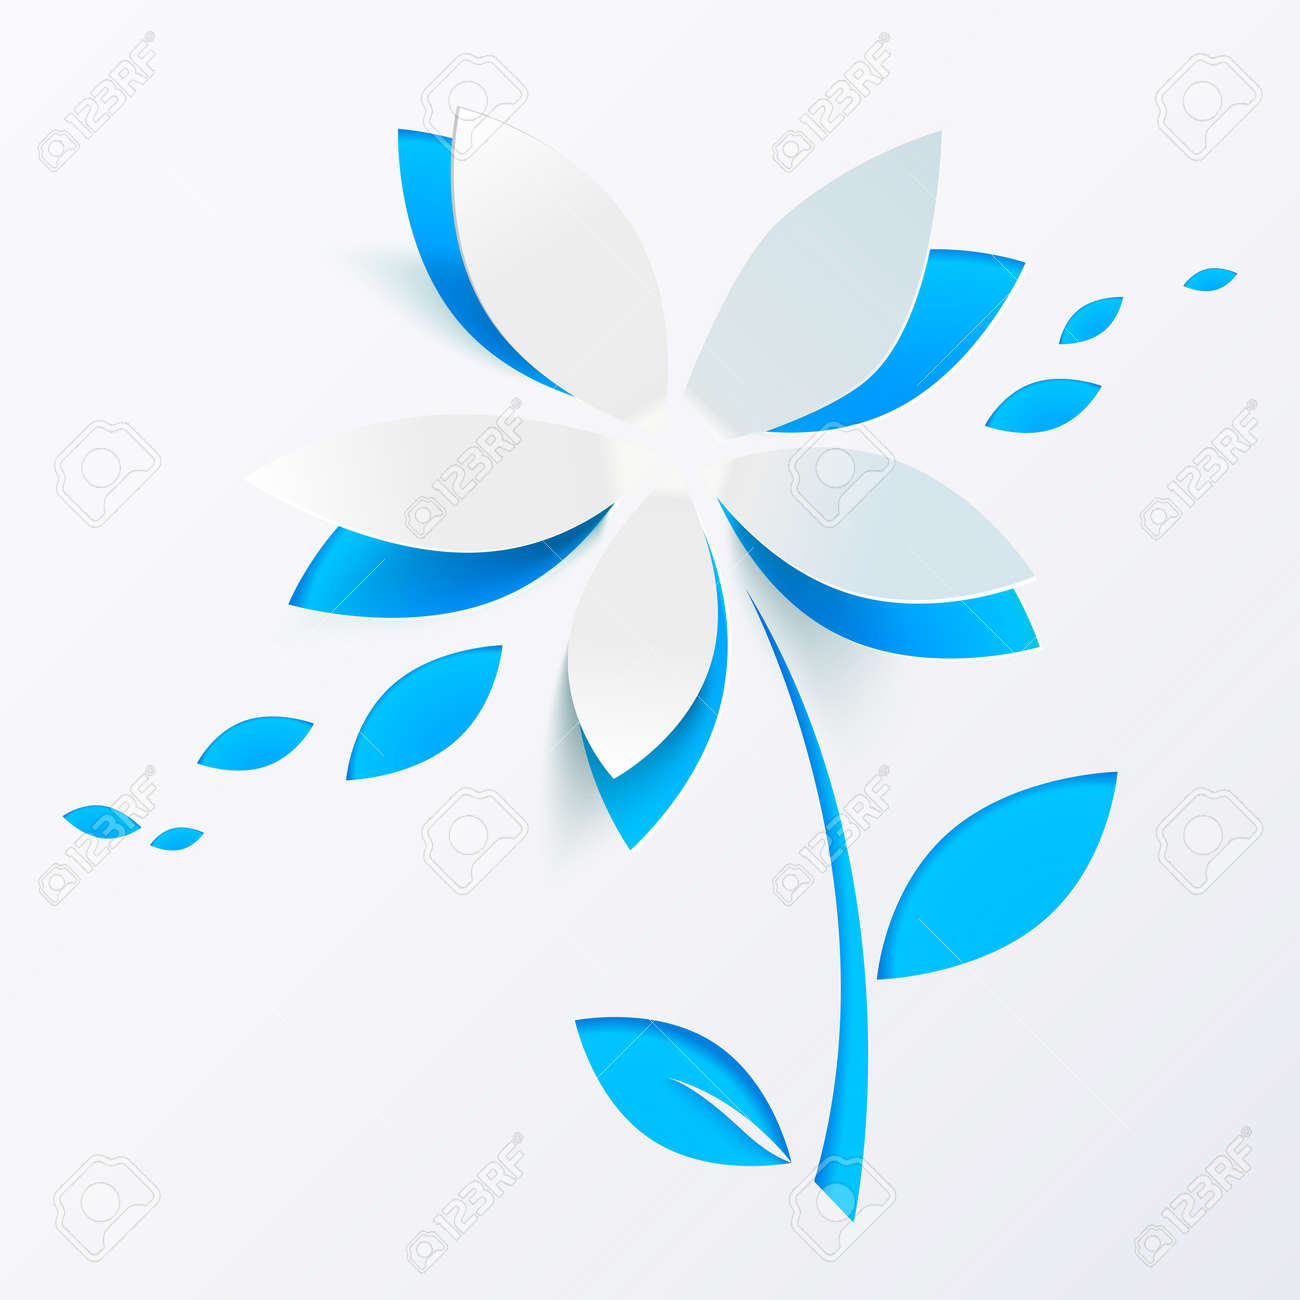 Blue paper flower vector greeting card template Stock Vector - 19047206